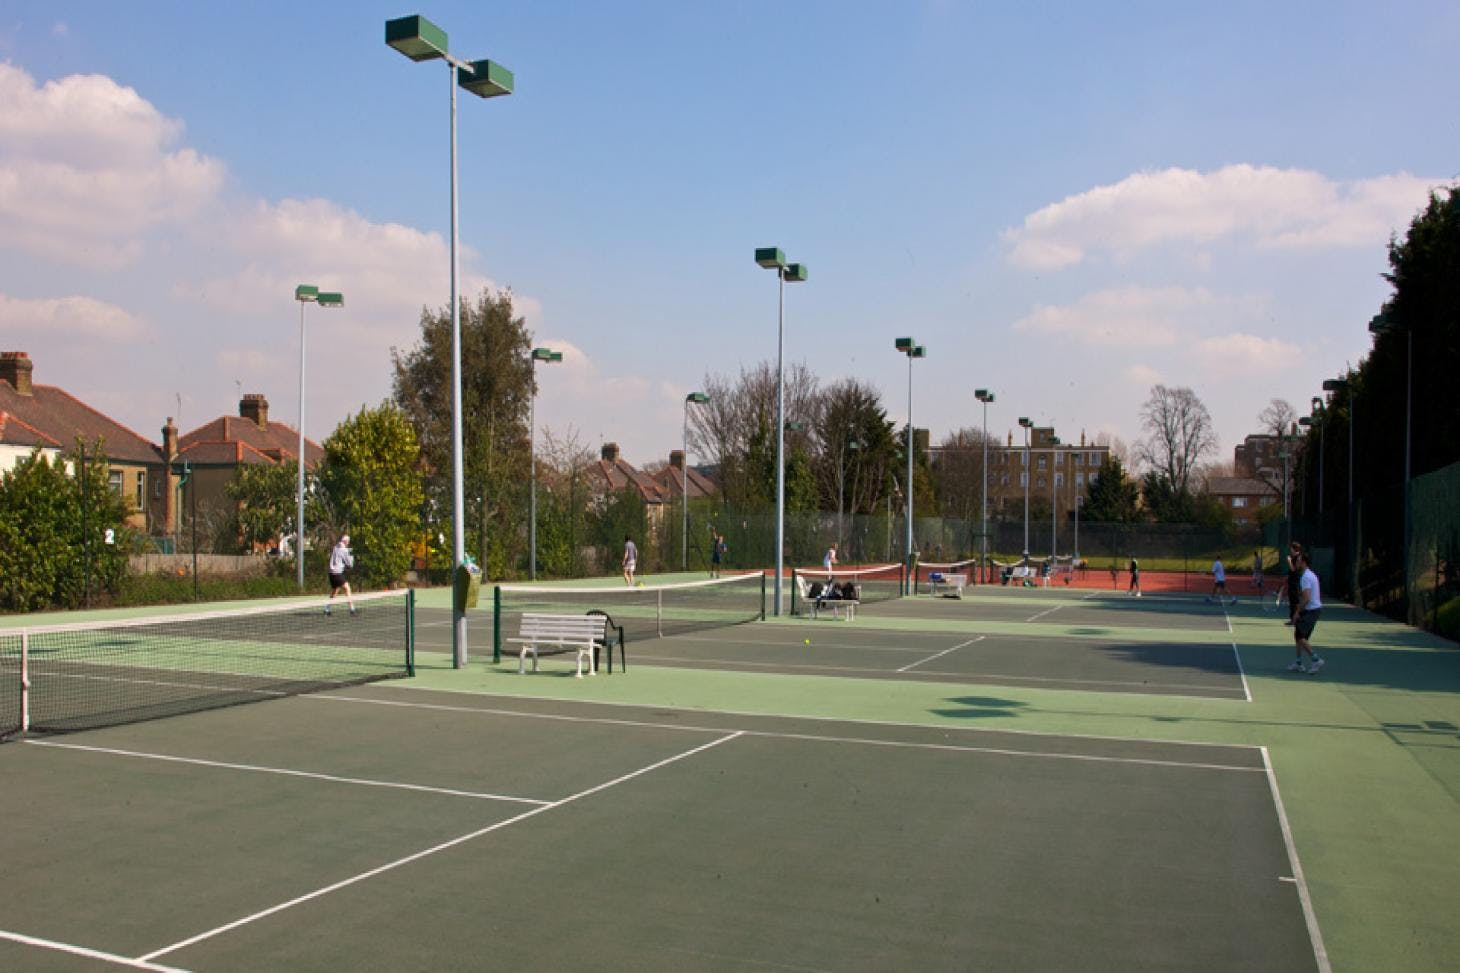 Blackheath Lawn Tennis Club Outdoor | Grass tennis court